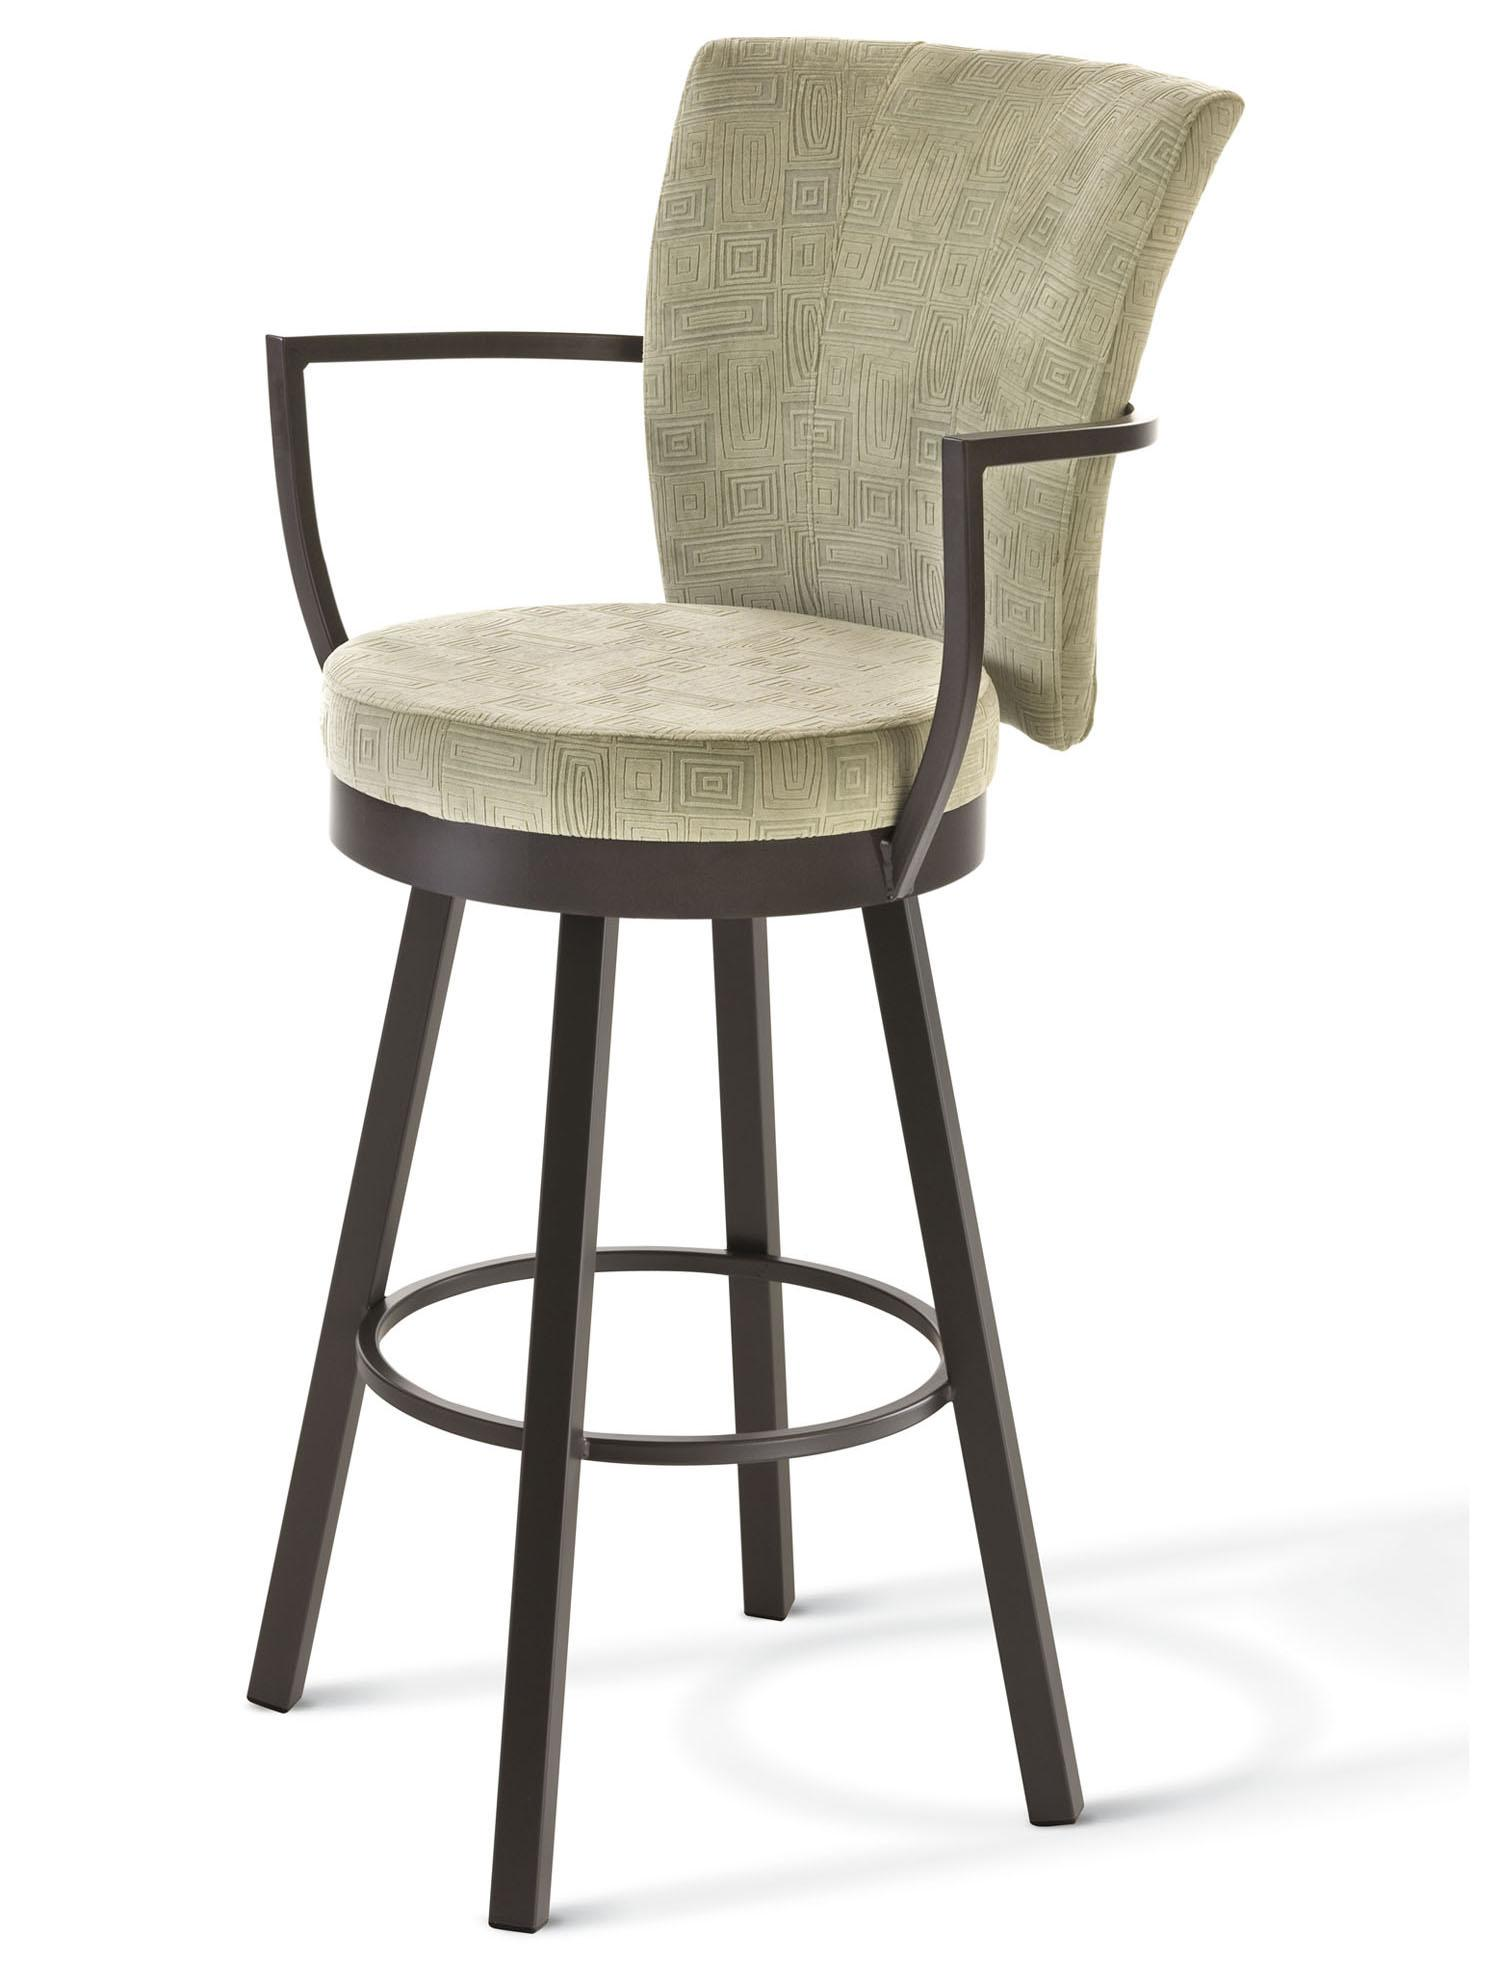 Boudoir Counter Height Cardin Swivel Stool by Amisco at Dinette Depot